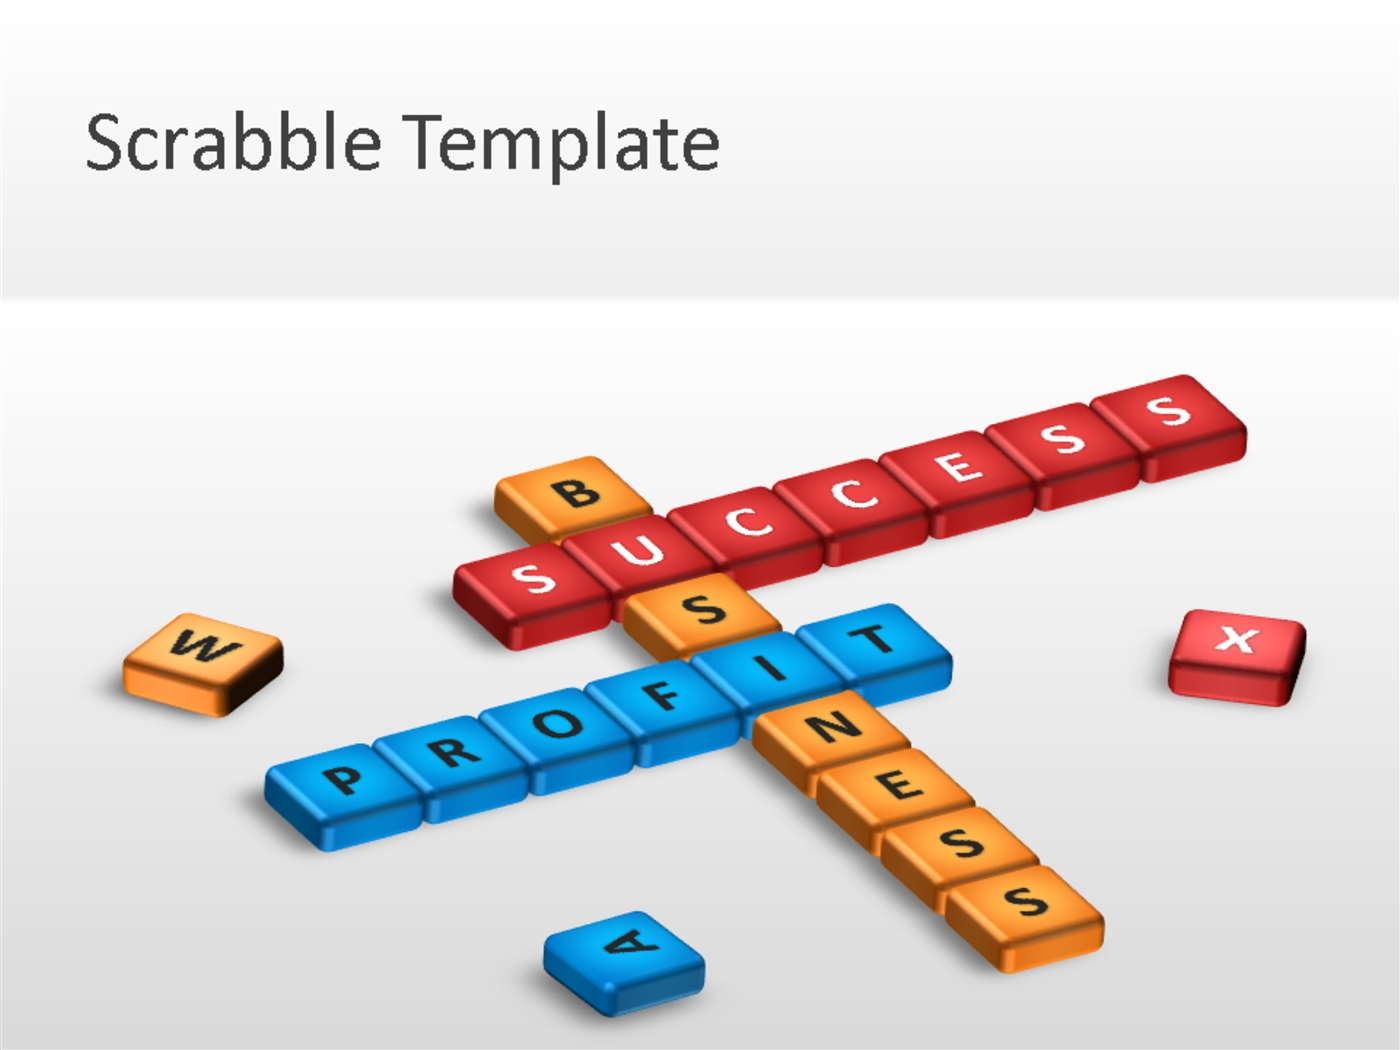 Scrabble powerpoint template powerpoint presentation ppt.